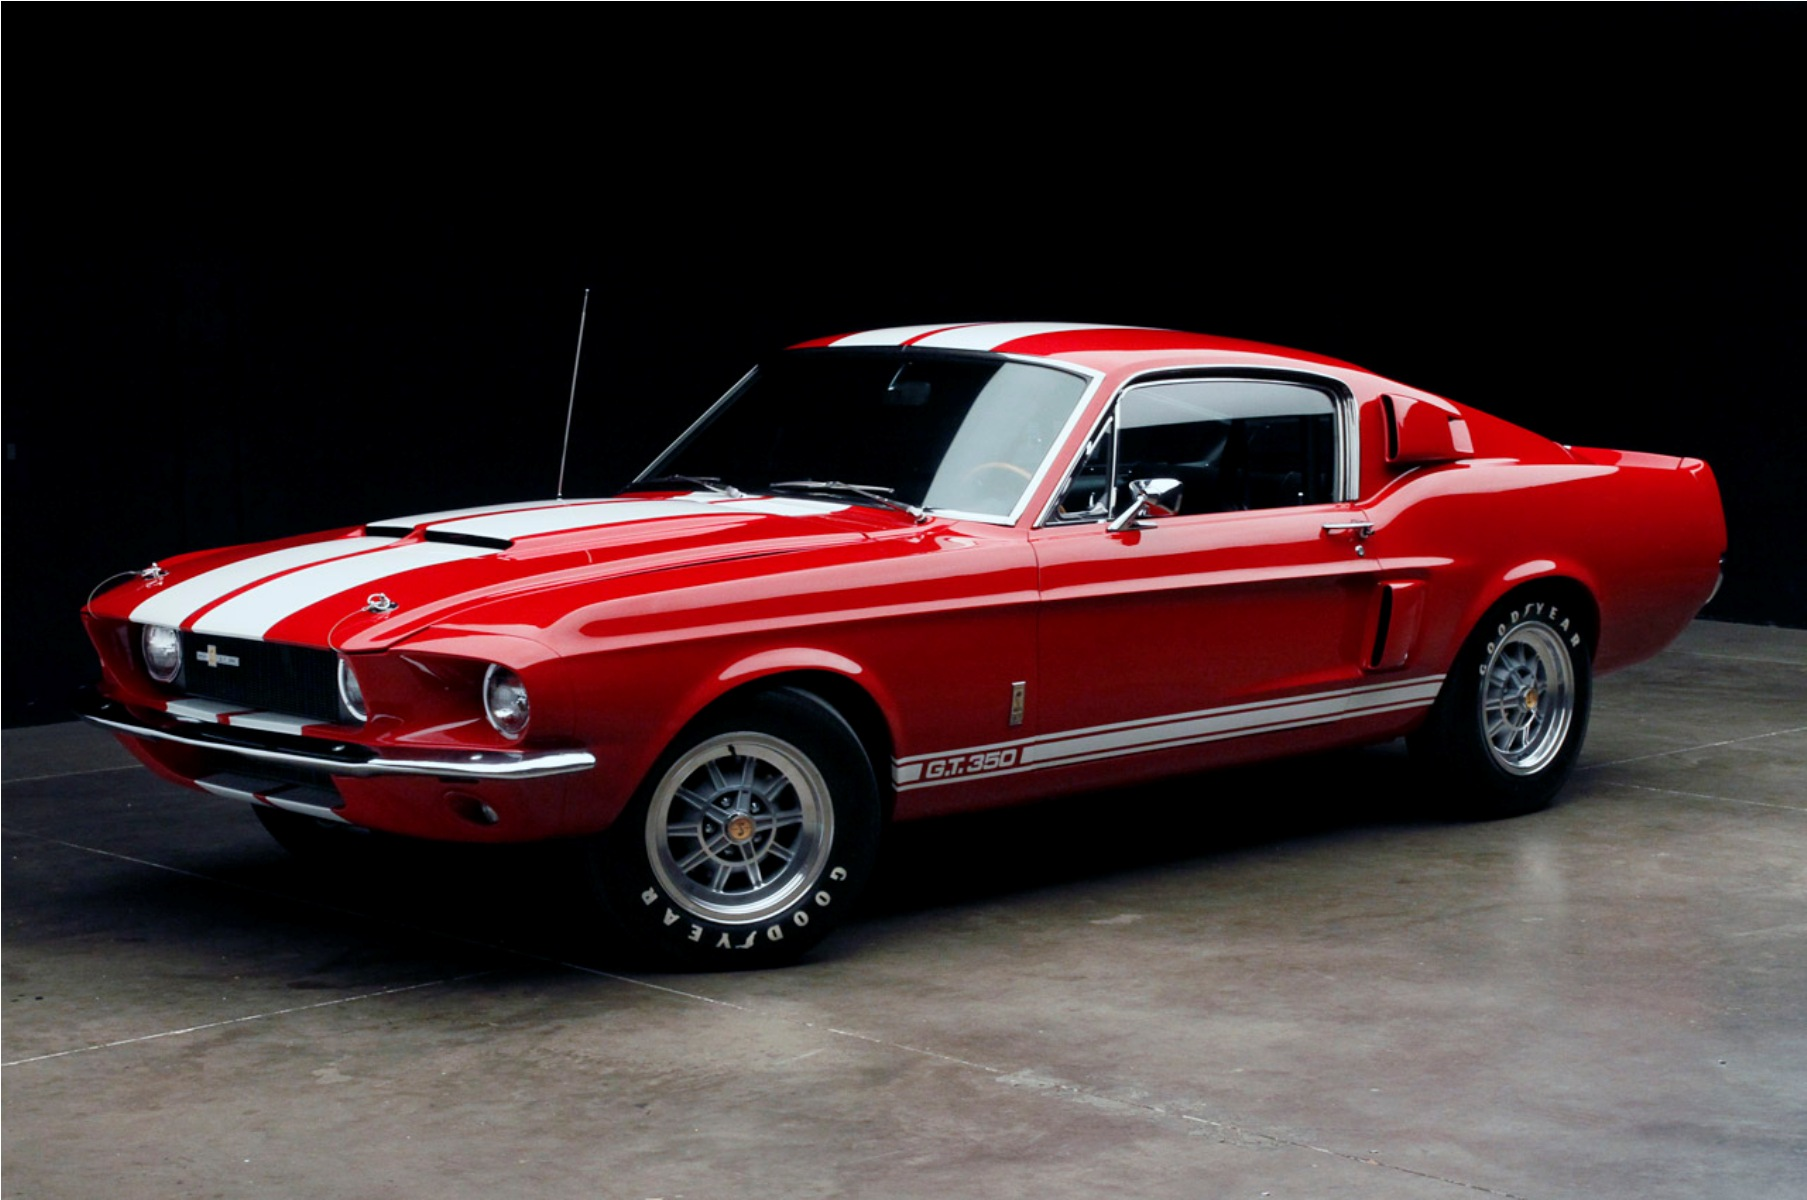 1967 Shelby Gt500 Wallpaper - WallpaperSafari